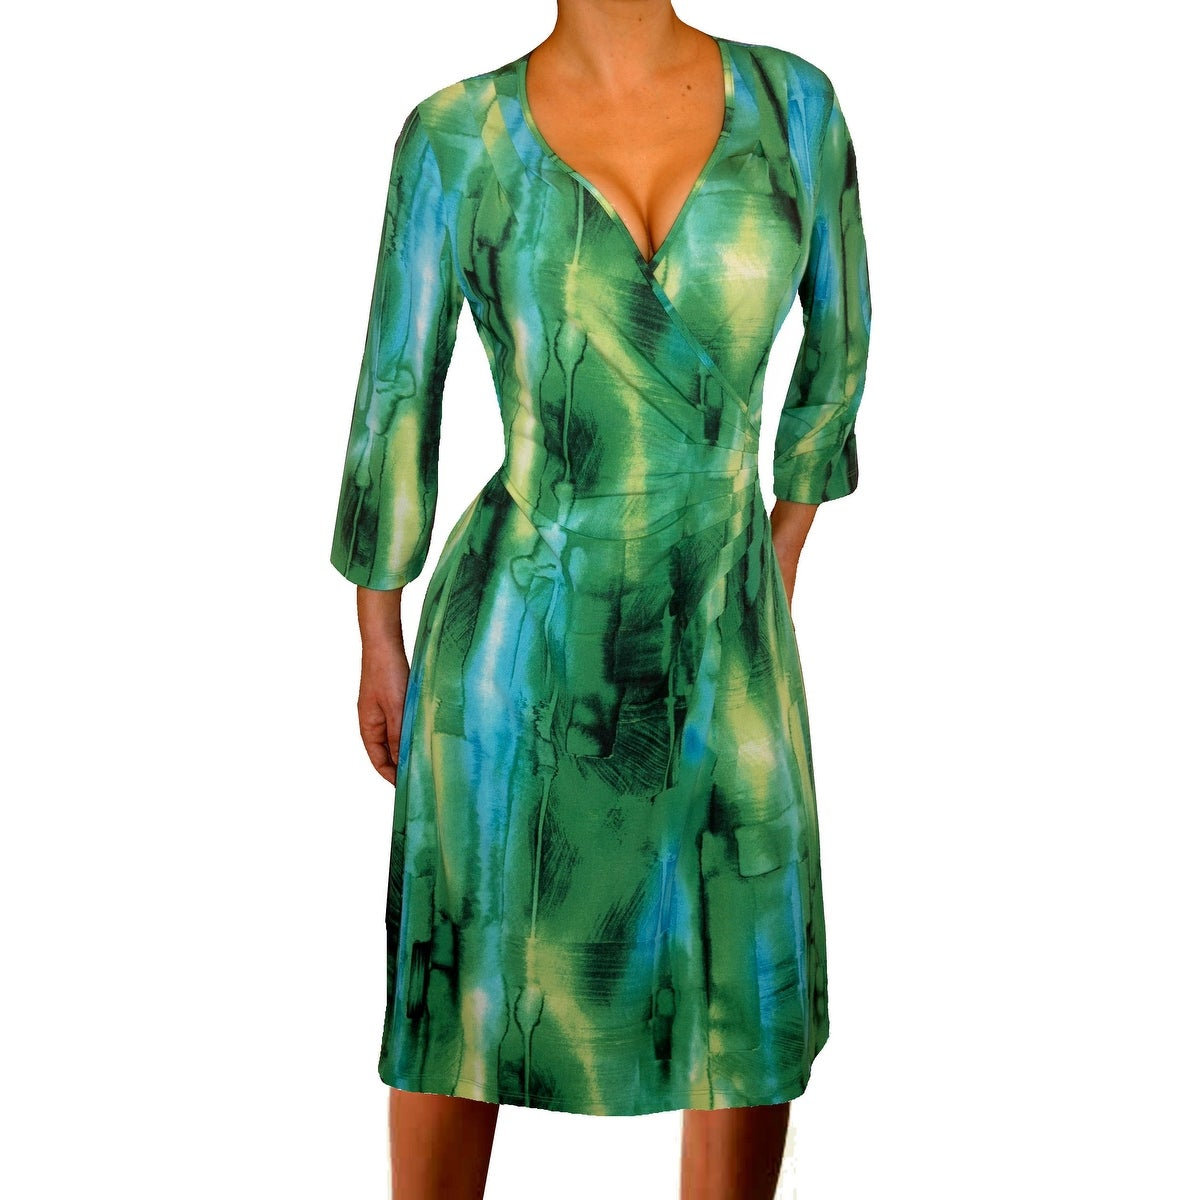 Funfash Plus Size Green Dress Slimming Wrap Cocktail Dress - Thumbnail 0